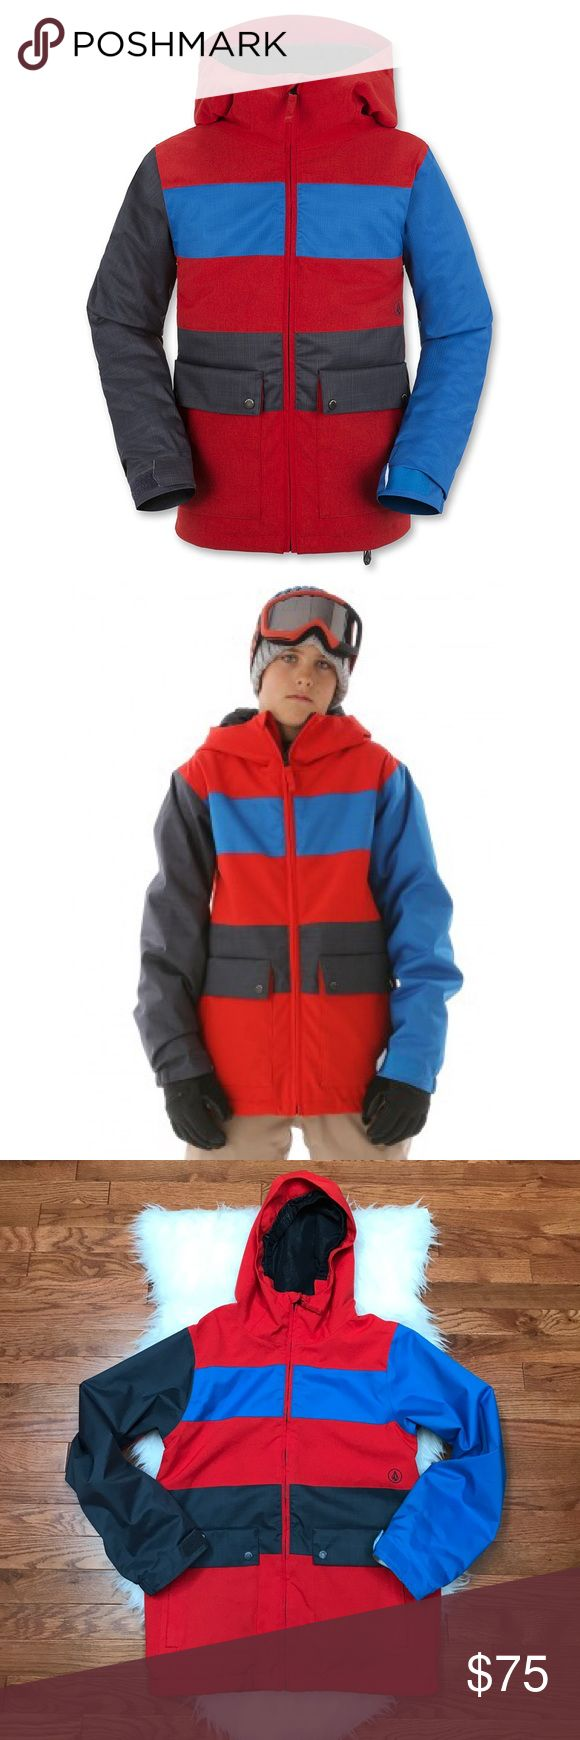 Volcom Boy's Insulated Snowboard Jacket Volcom Chiefdom Insulated Jacket. Pre-owned. Some wear on cuffs (shown in picture #5). Fully insulated; breathable lining system; helmet compatible hood; brushed tri-cot lined hand warmer pockets. 100% Polyester. Retails for $150. Volcom Jackets & Coats